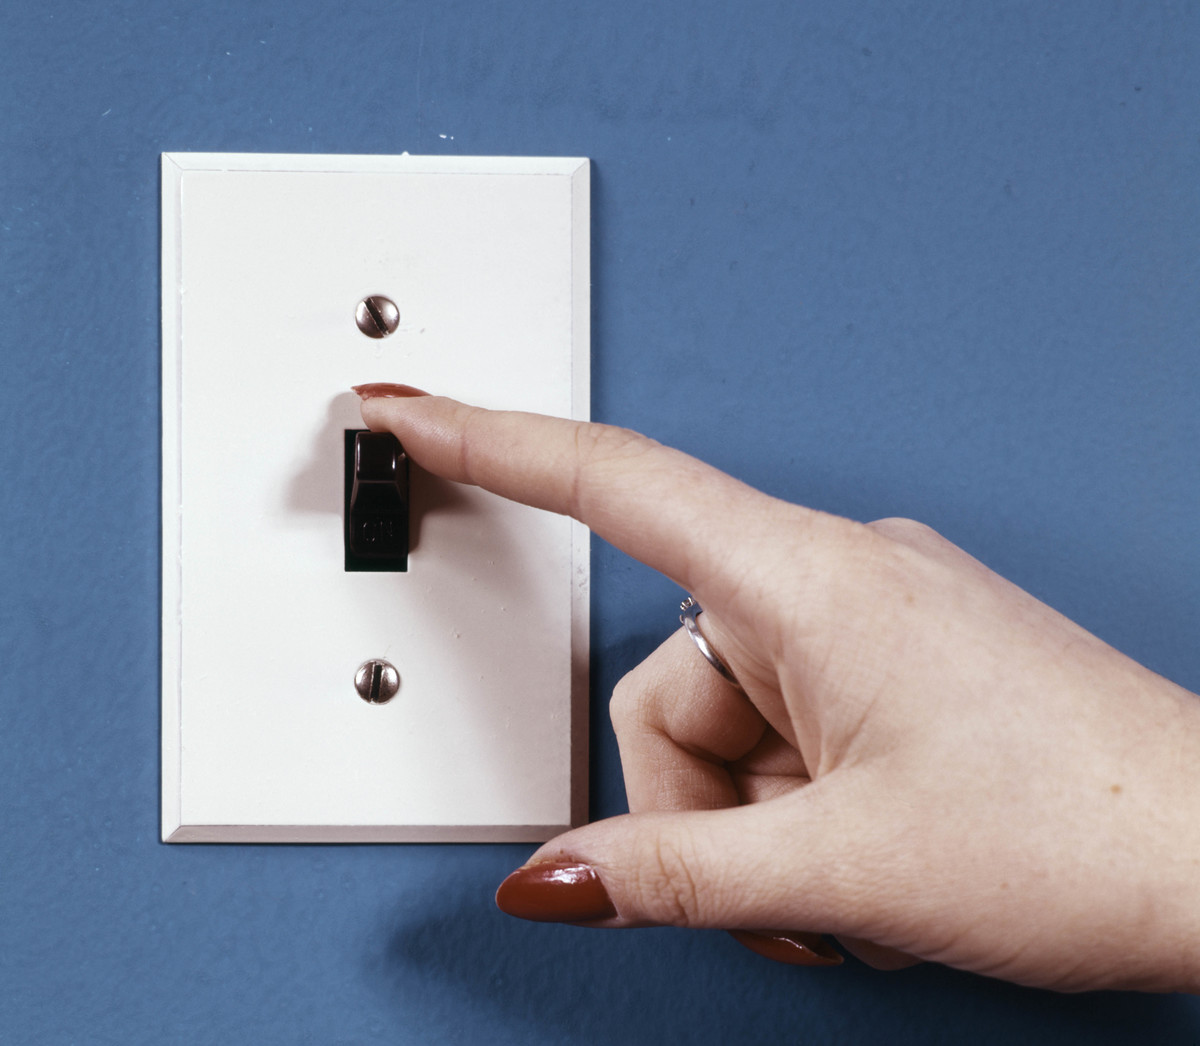 flipping a light switch